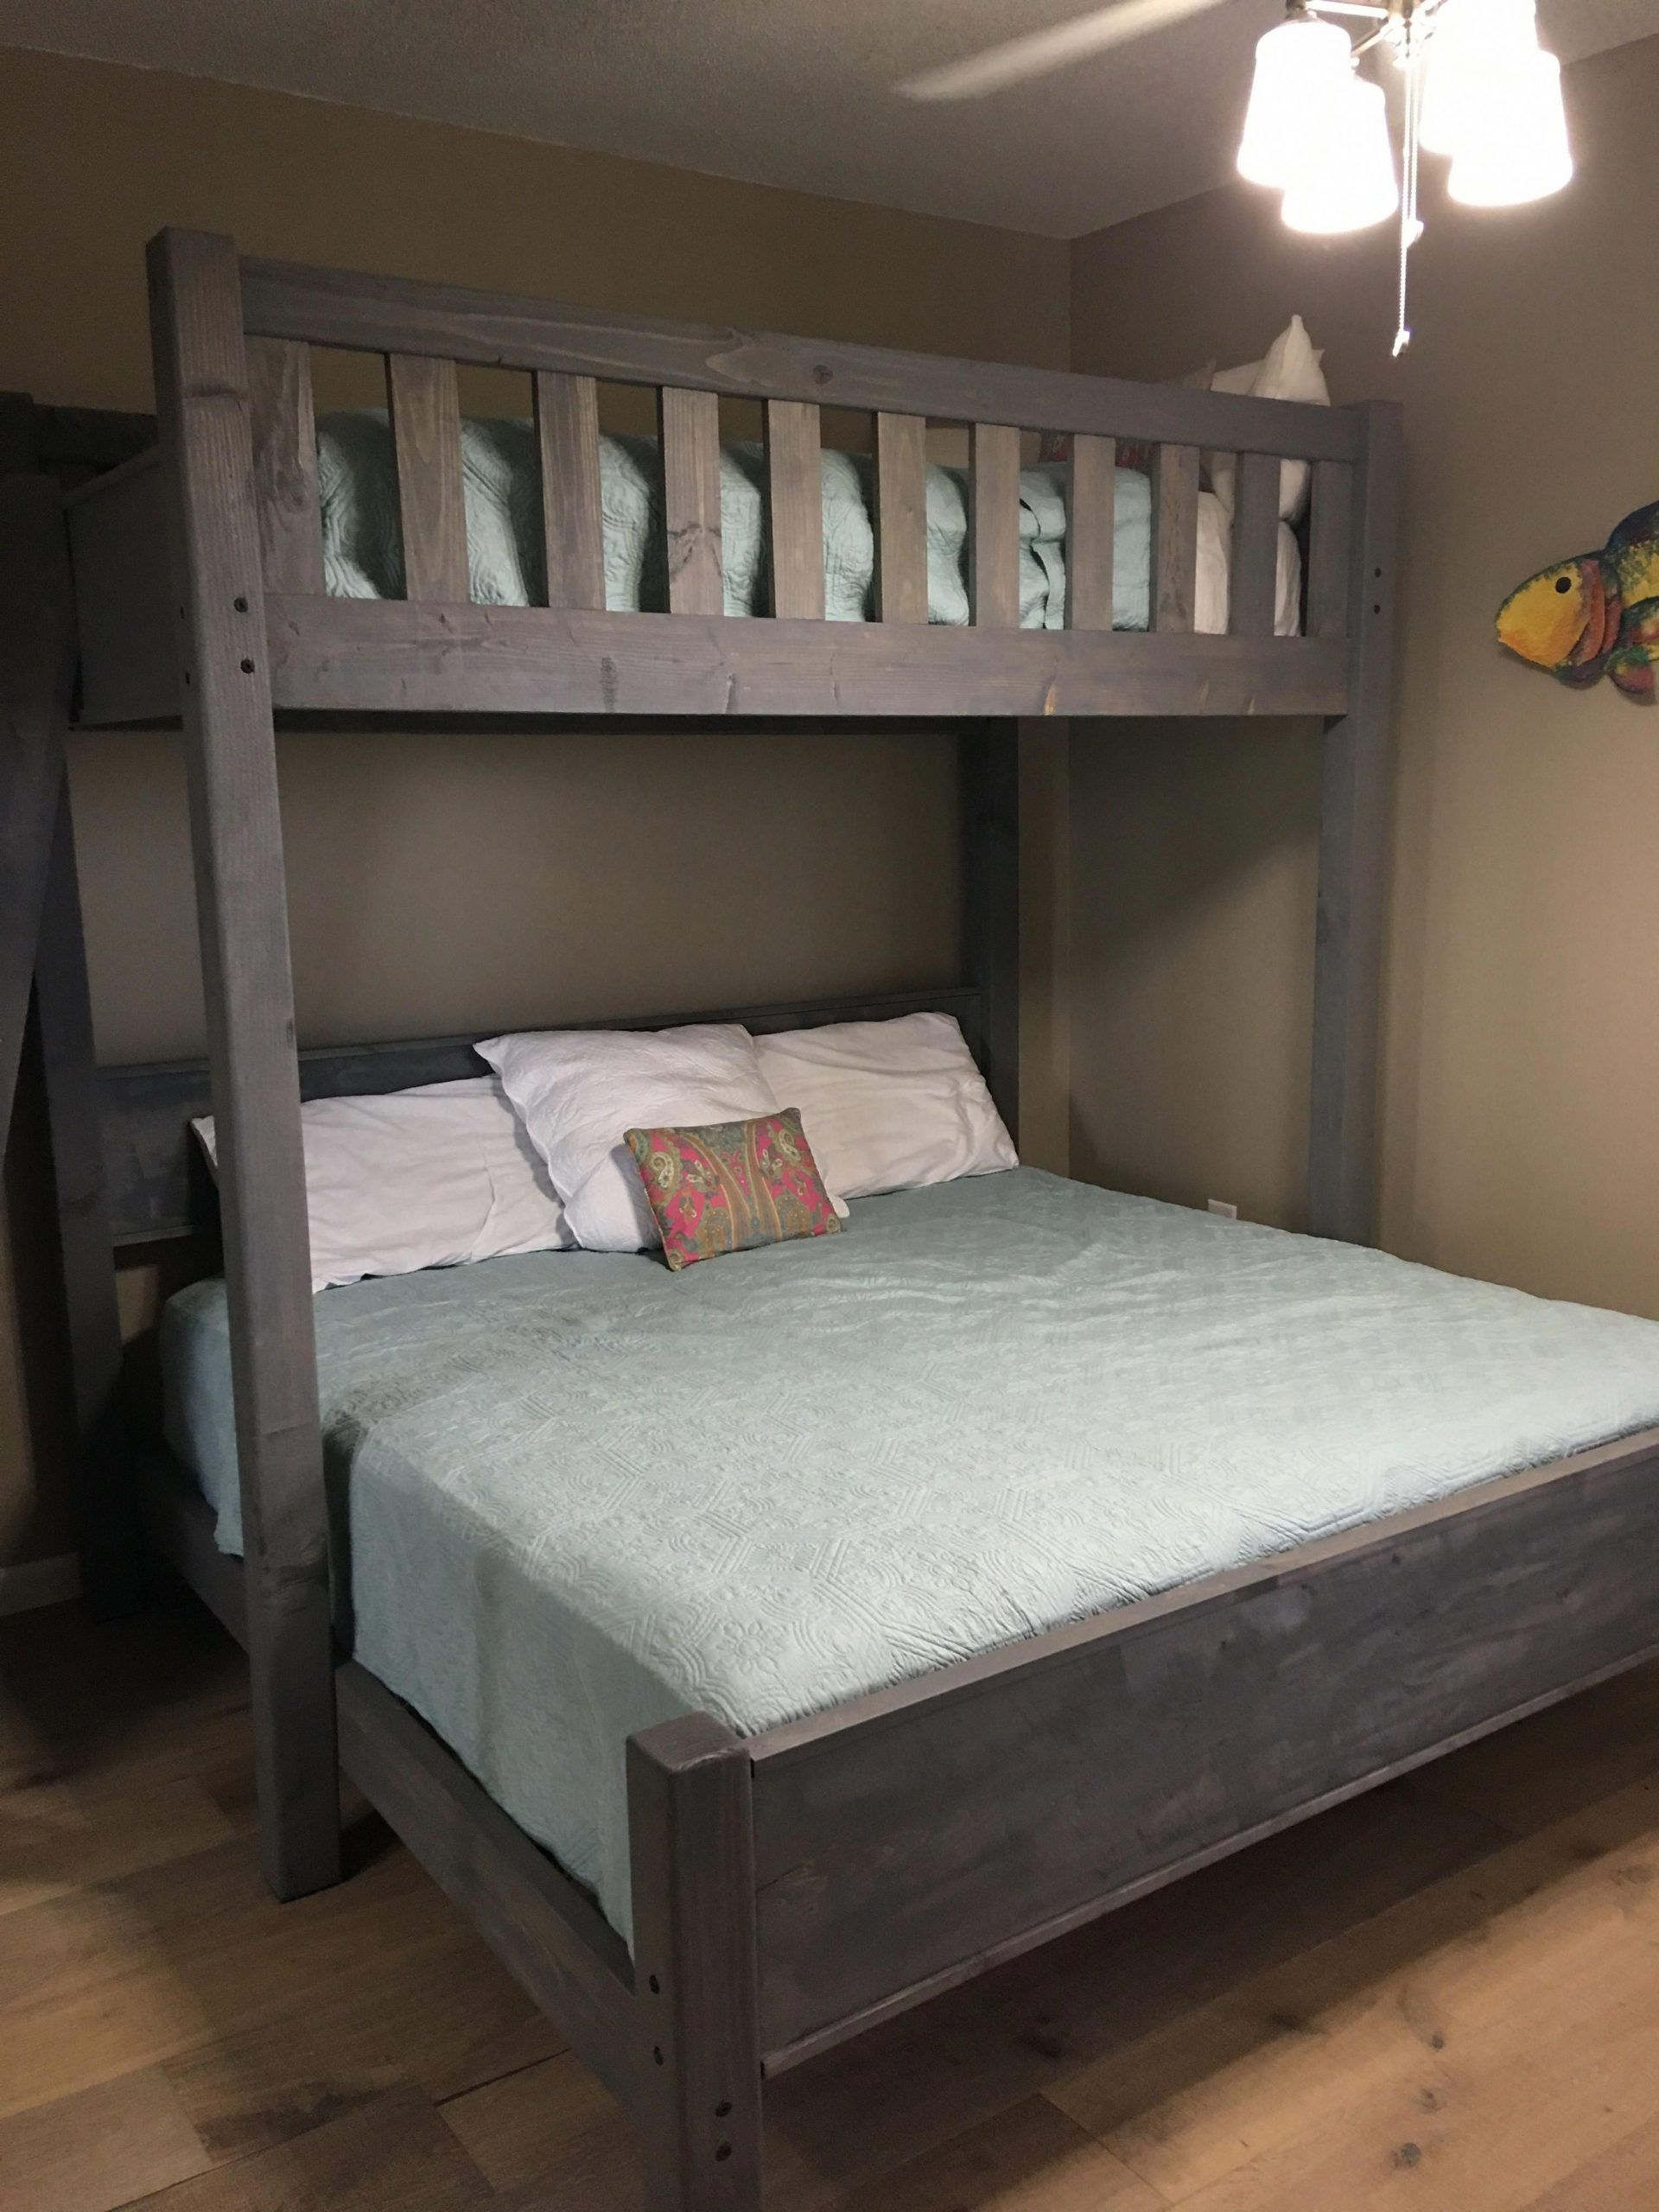 full over full bunk beds for adults on twin over full bunk bed for adults 2020 diy bunk bed bunk bed designs custom bunk beds pinterest